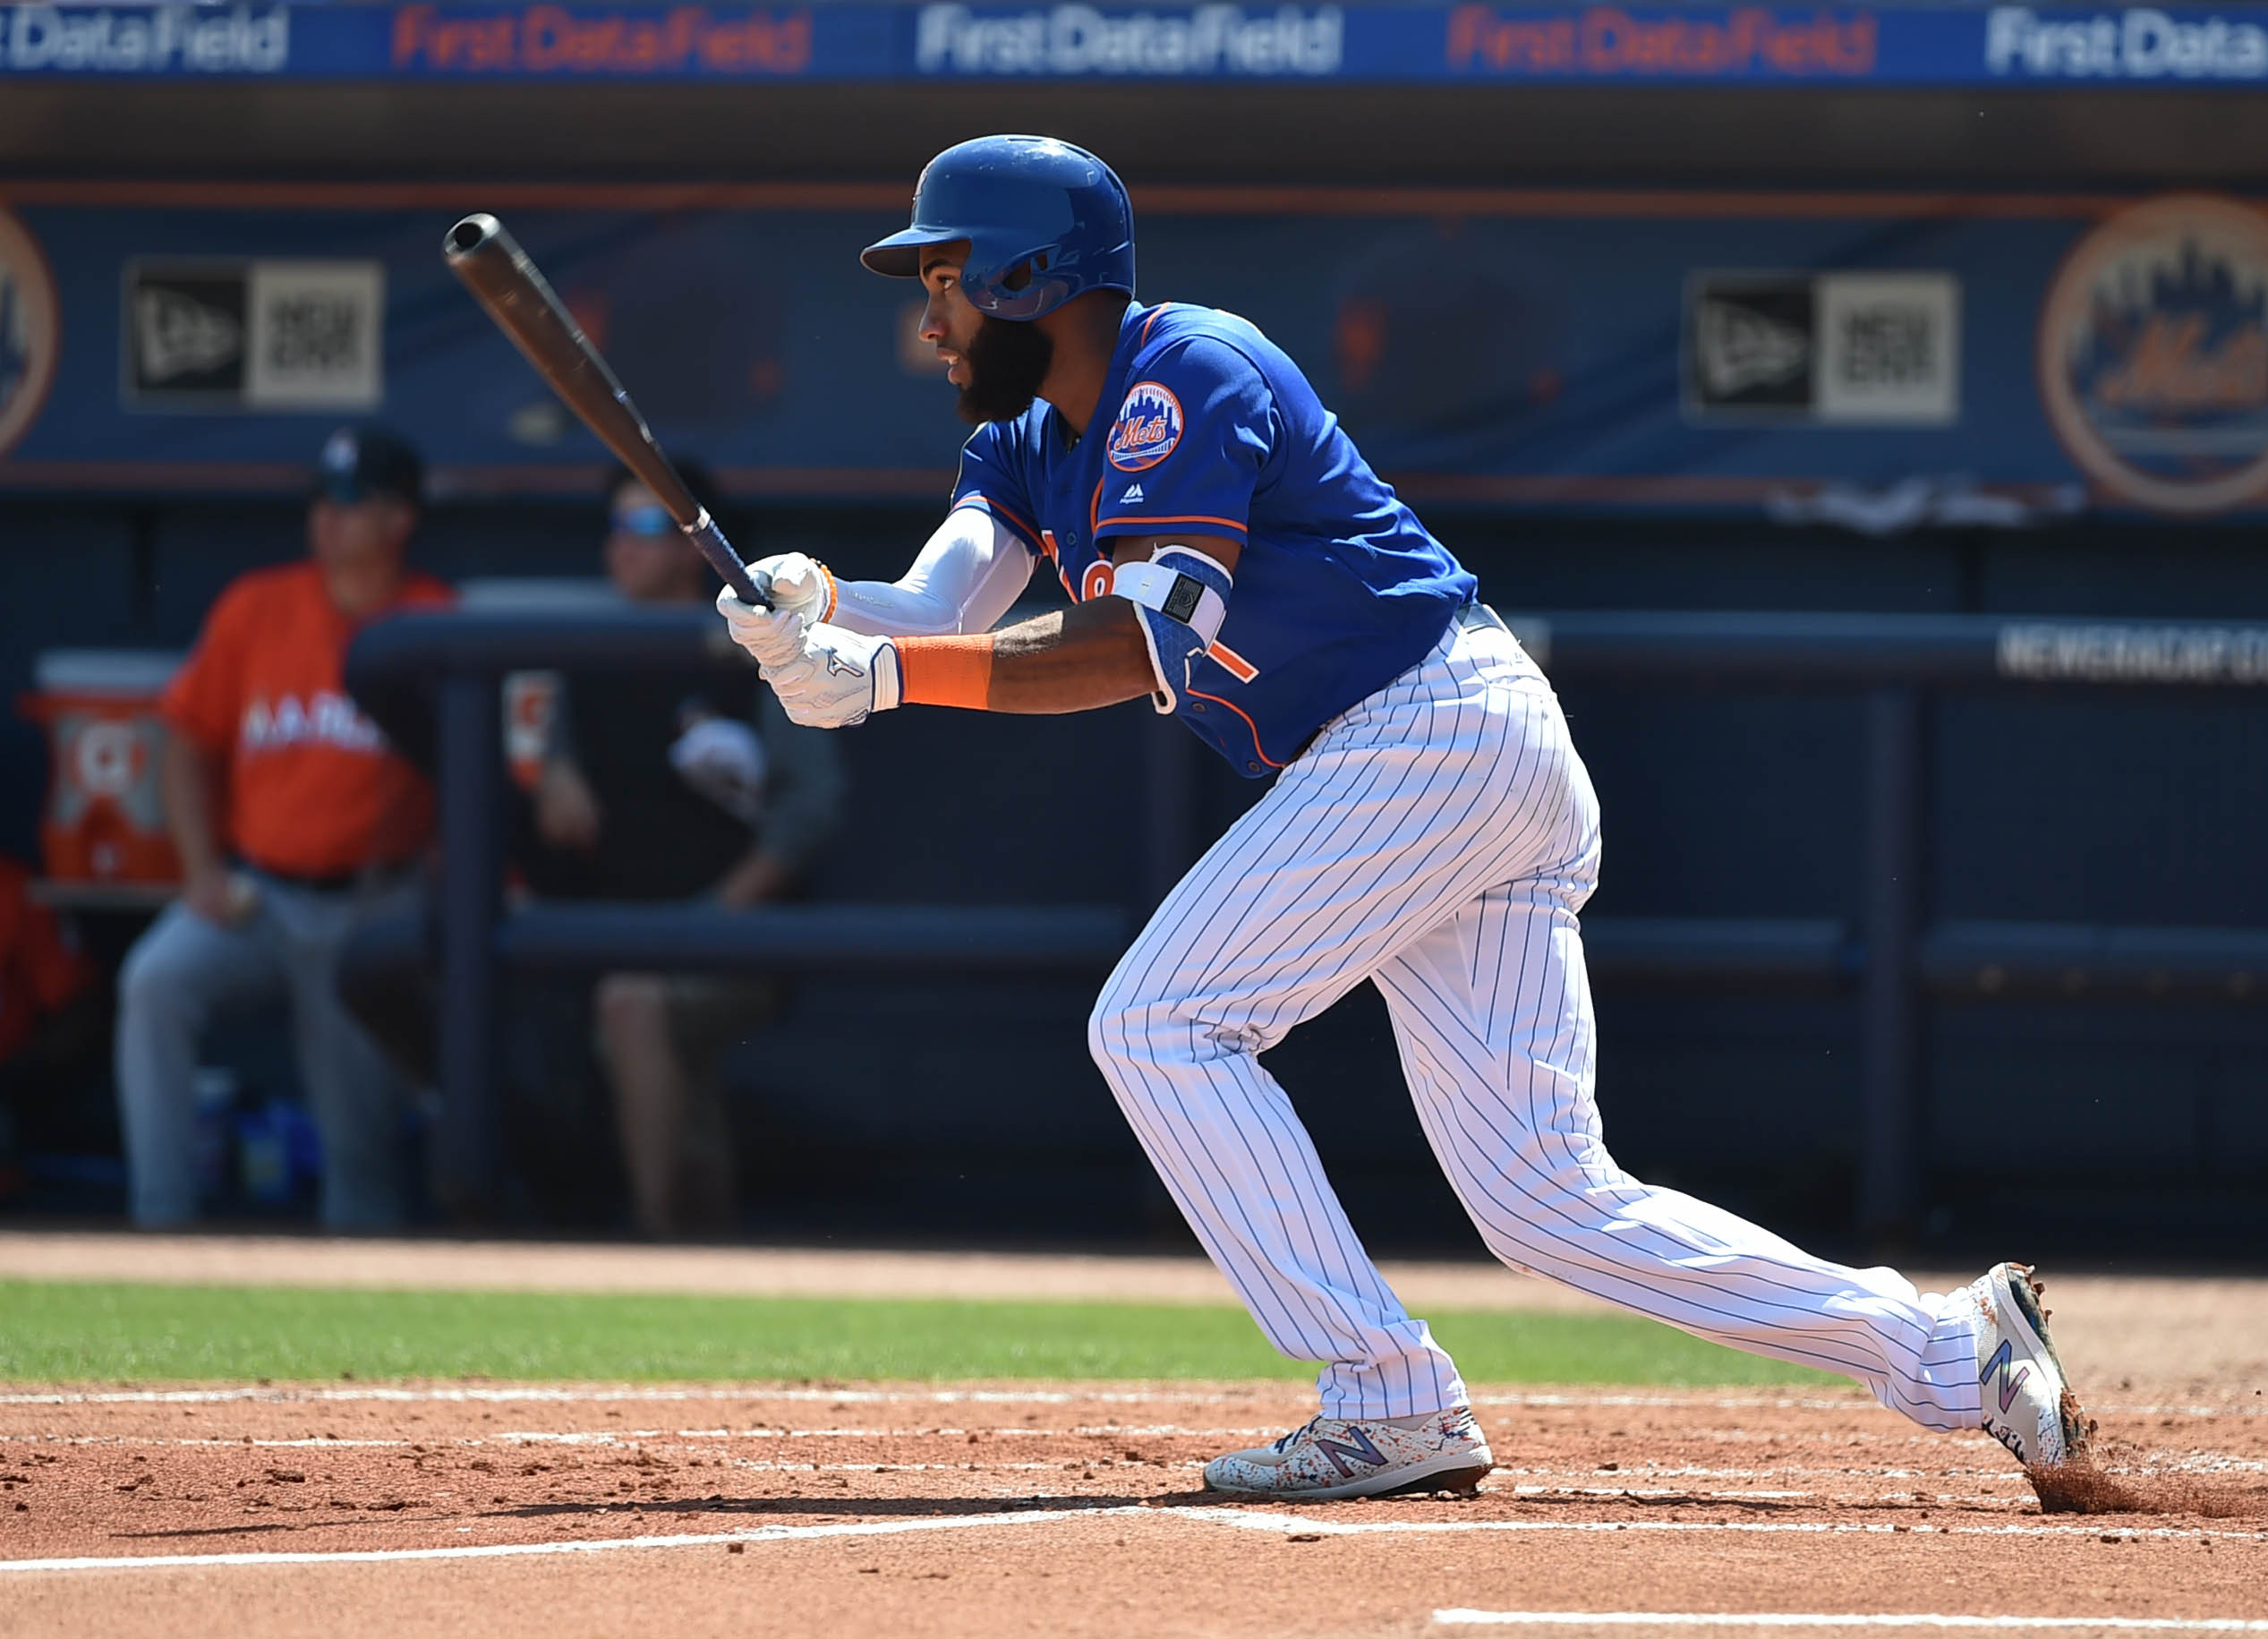 Report: New York Mets Could Leave Port St. Lucie For New Spring Training Home